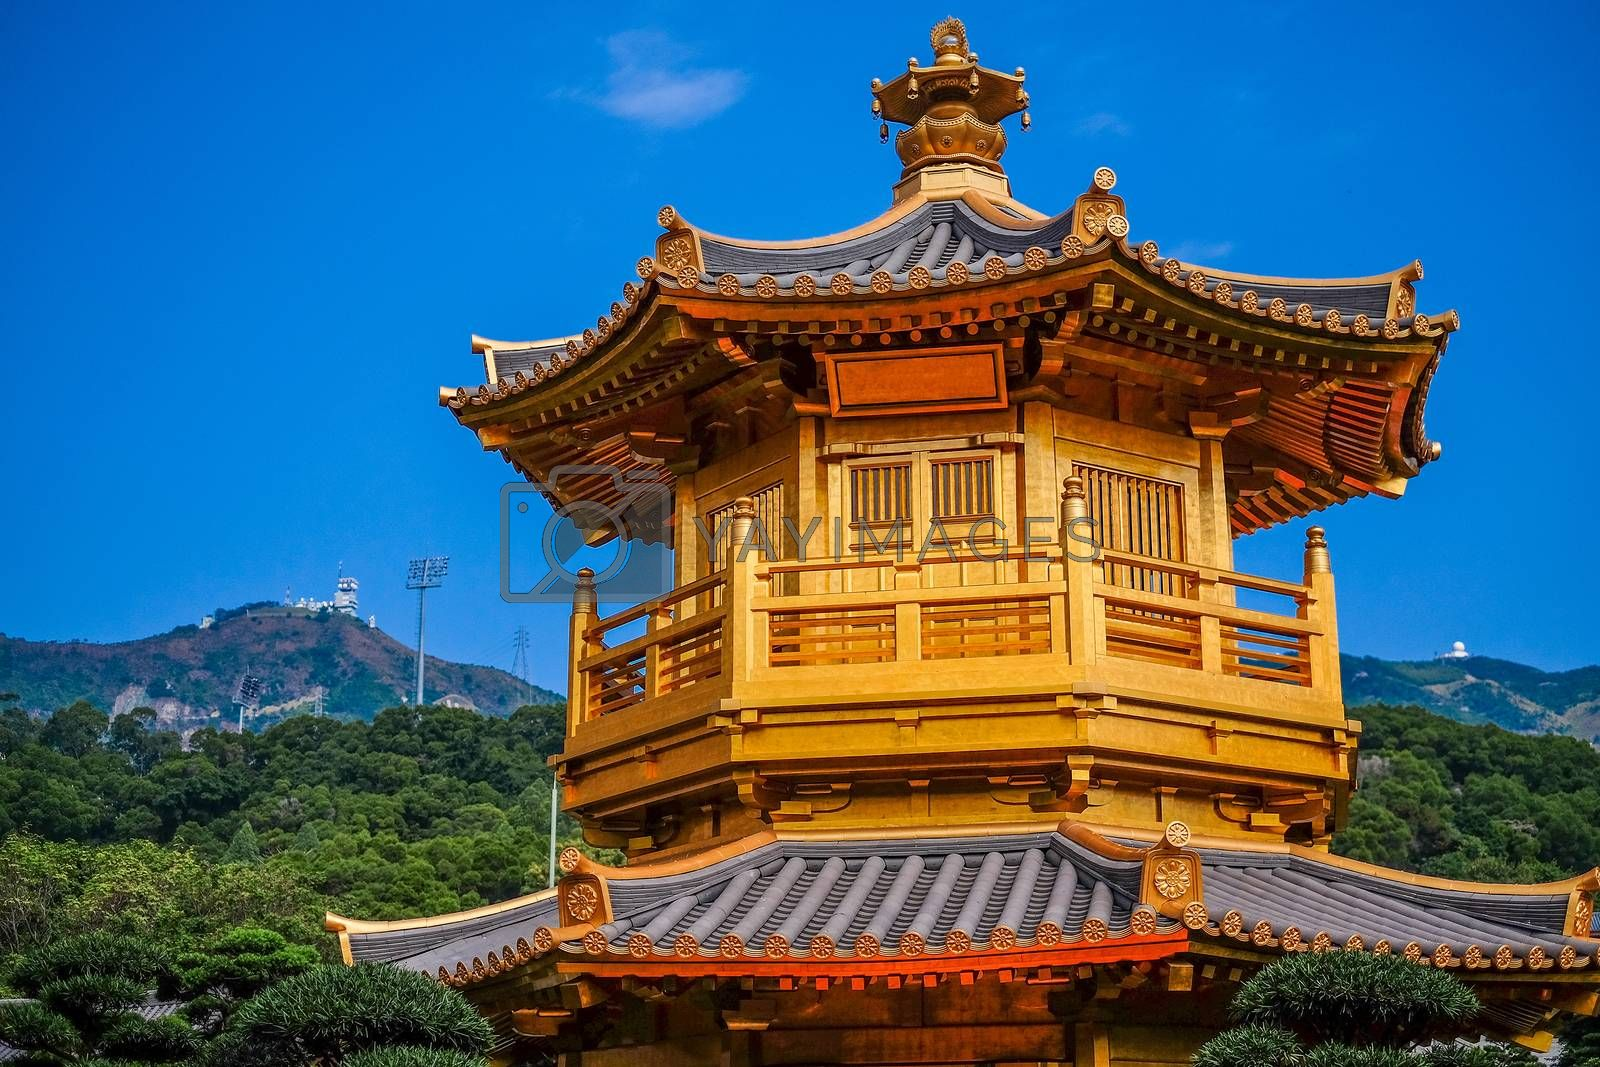 Front View The Golden Pavilion of Perfection in Nan Lian Garden